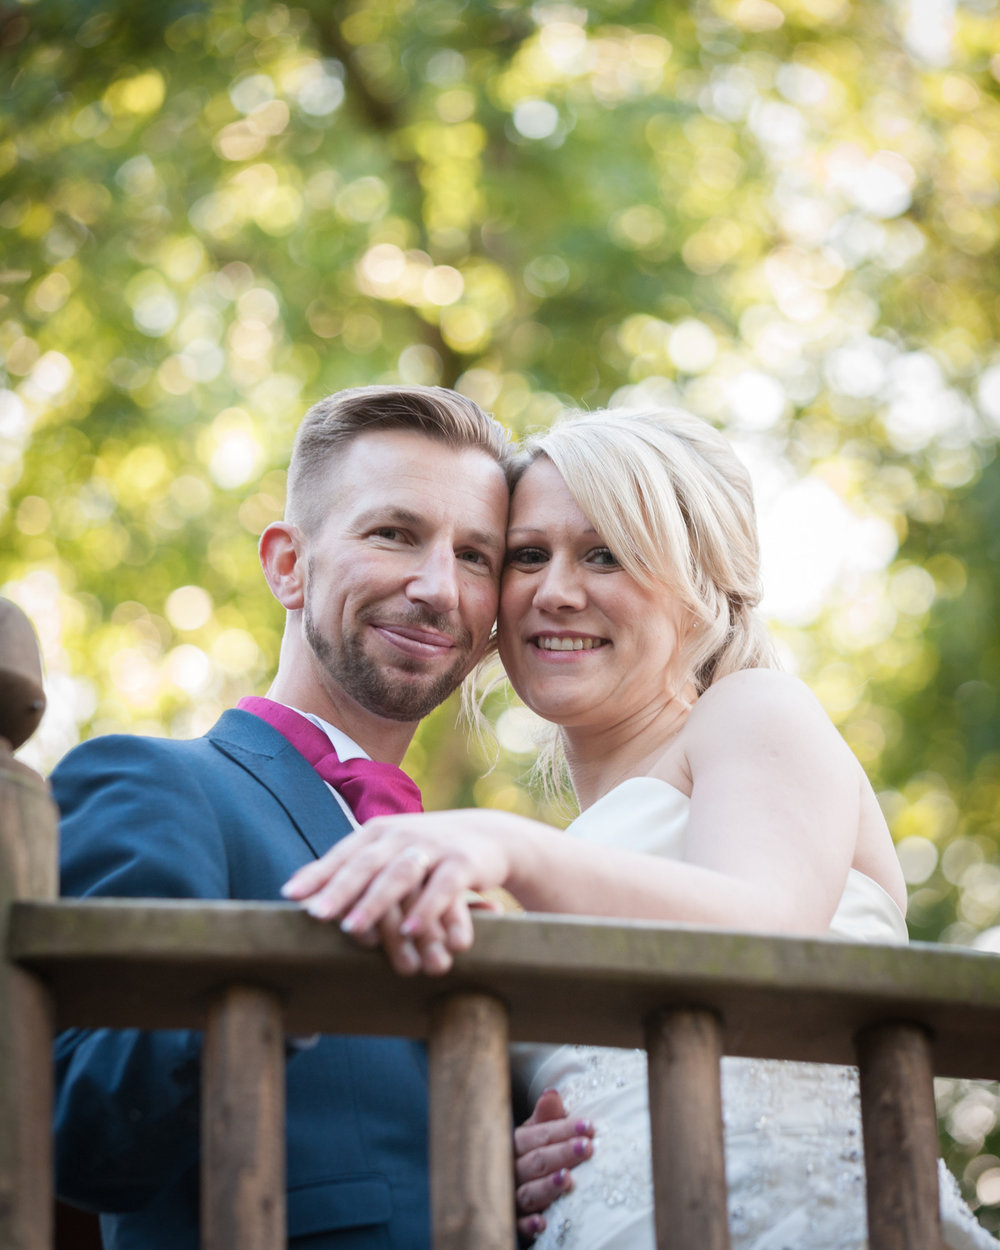 charnwood_weddings_The_Woodlands_Hotwell_Hall_Matt_Helen270.JPG